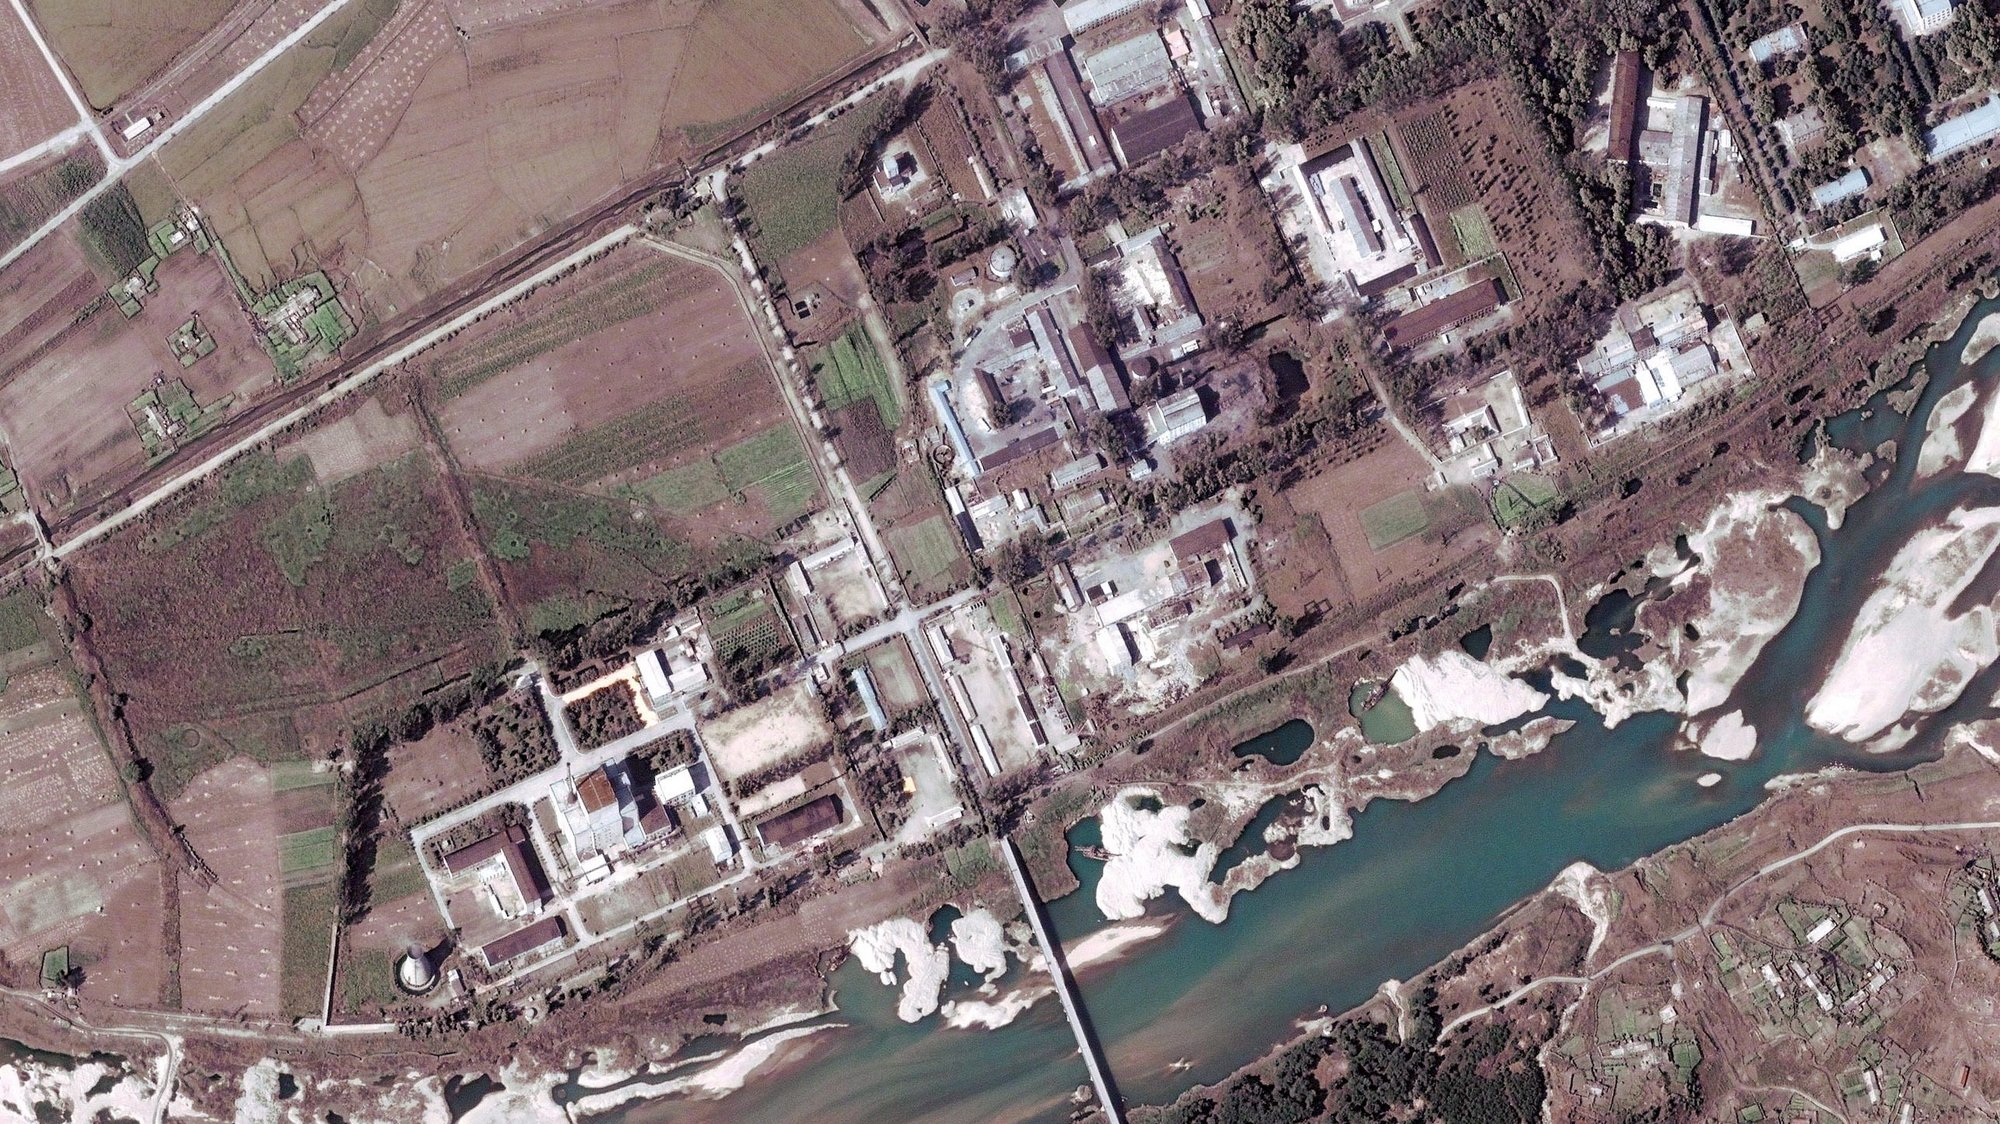 epa03647418 (FILE) A file handout satelite image provided by DigitalGlobe and dated 29 September 2004 shows the Yongbyon complex nuclear facility, some 100 km north of Pyongyang, North Korea. According to media reports on 02 April 2013, North Korea has announced that it will reopen the Yongbyon nuclear complex which was closed in 2007.  EPA/DIGITAL GLOBE / HANDOUT MANDATORY CREDIT HANDOUT EDITORIAL USE ONLY/NO SALES